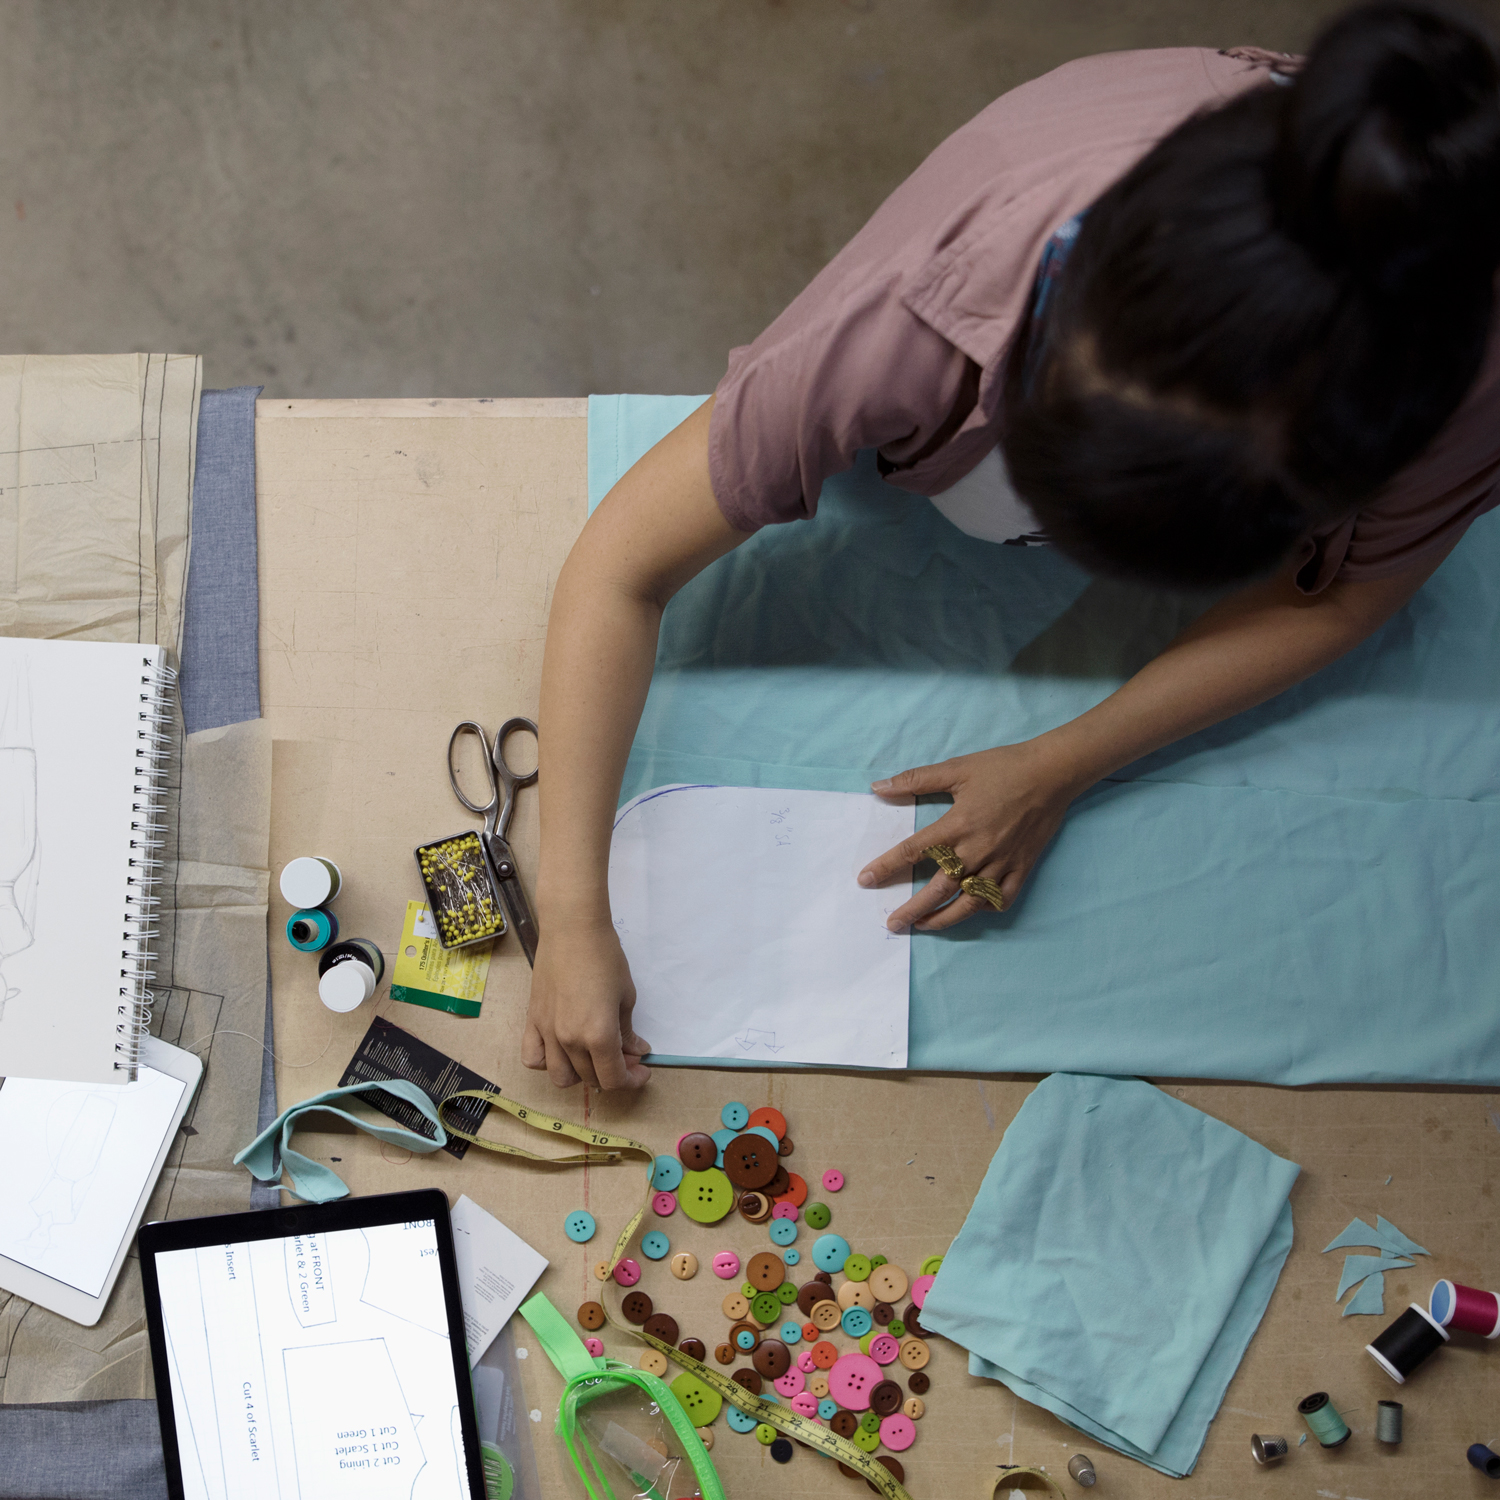 TextileLab 101 - In this class you will learn how to work with various domestic sewing machines, use of an industrial walking foot machine, textile and thread basics, and an overview of basic pattern concepts and edits.LEARN ABOUT TEXTILE LAB 101